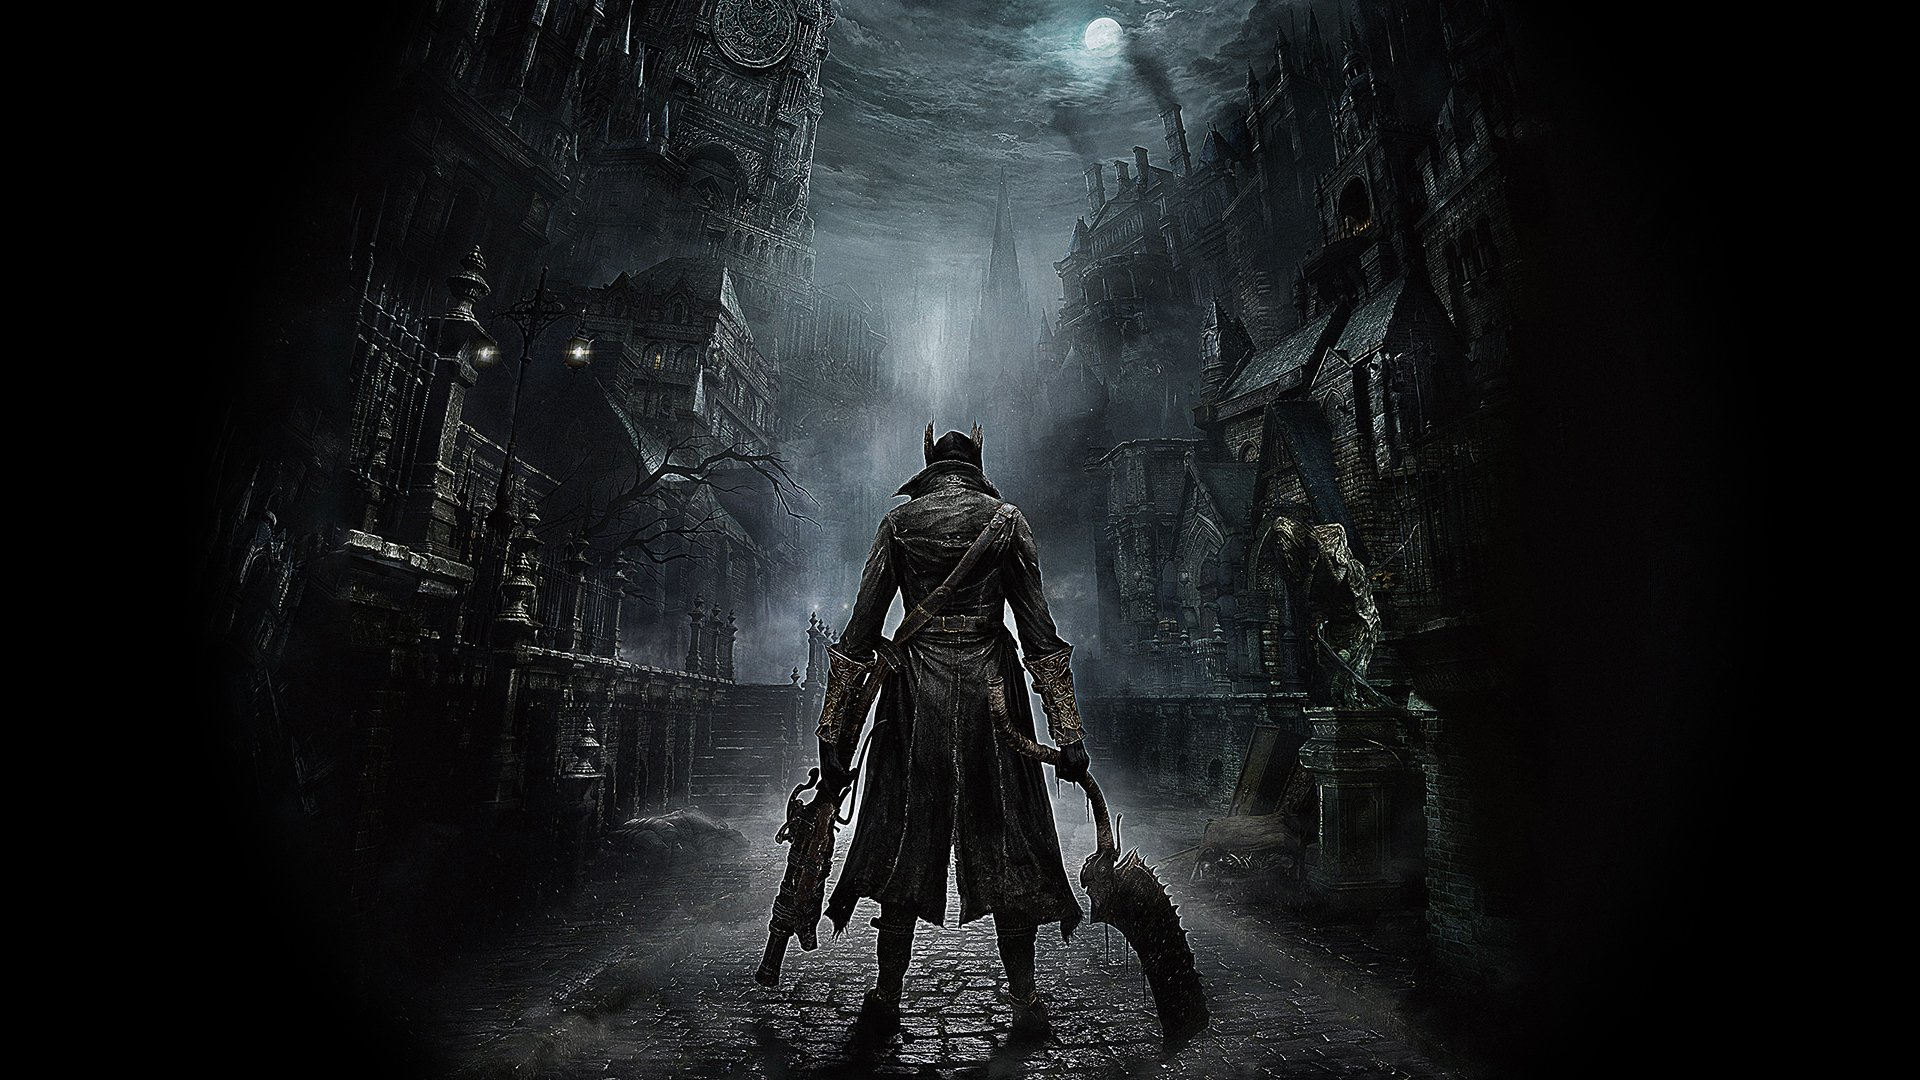 122 bloodborne hd wallpapers | background images - wallpaper abyss